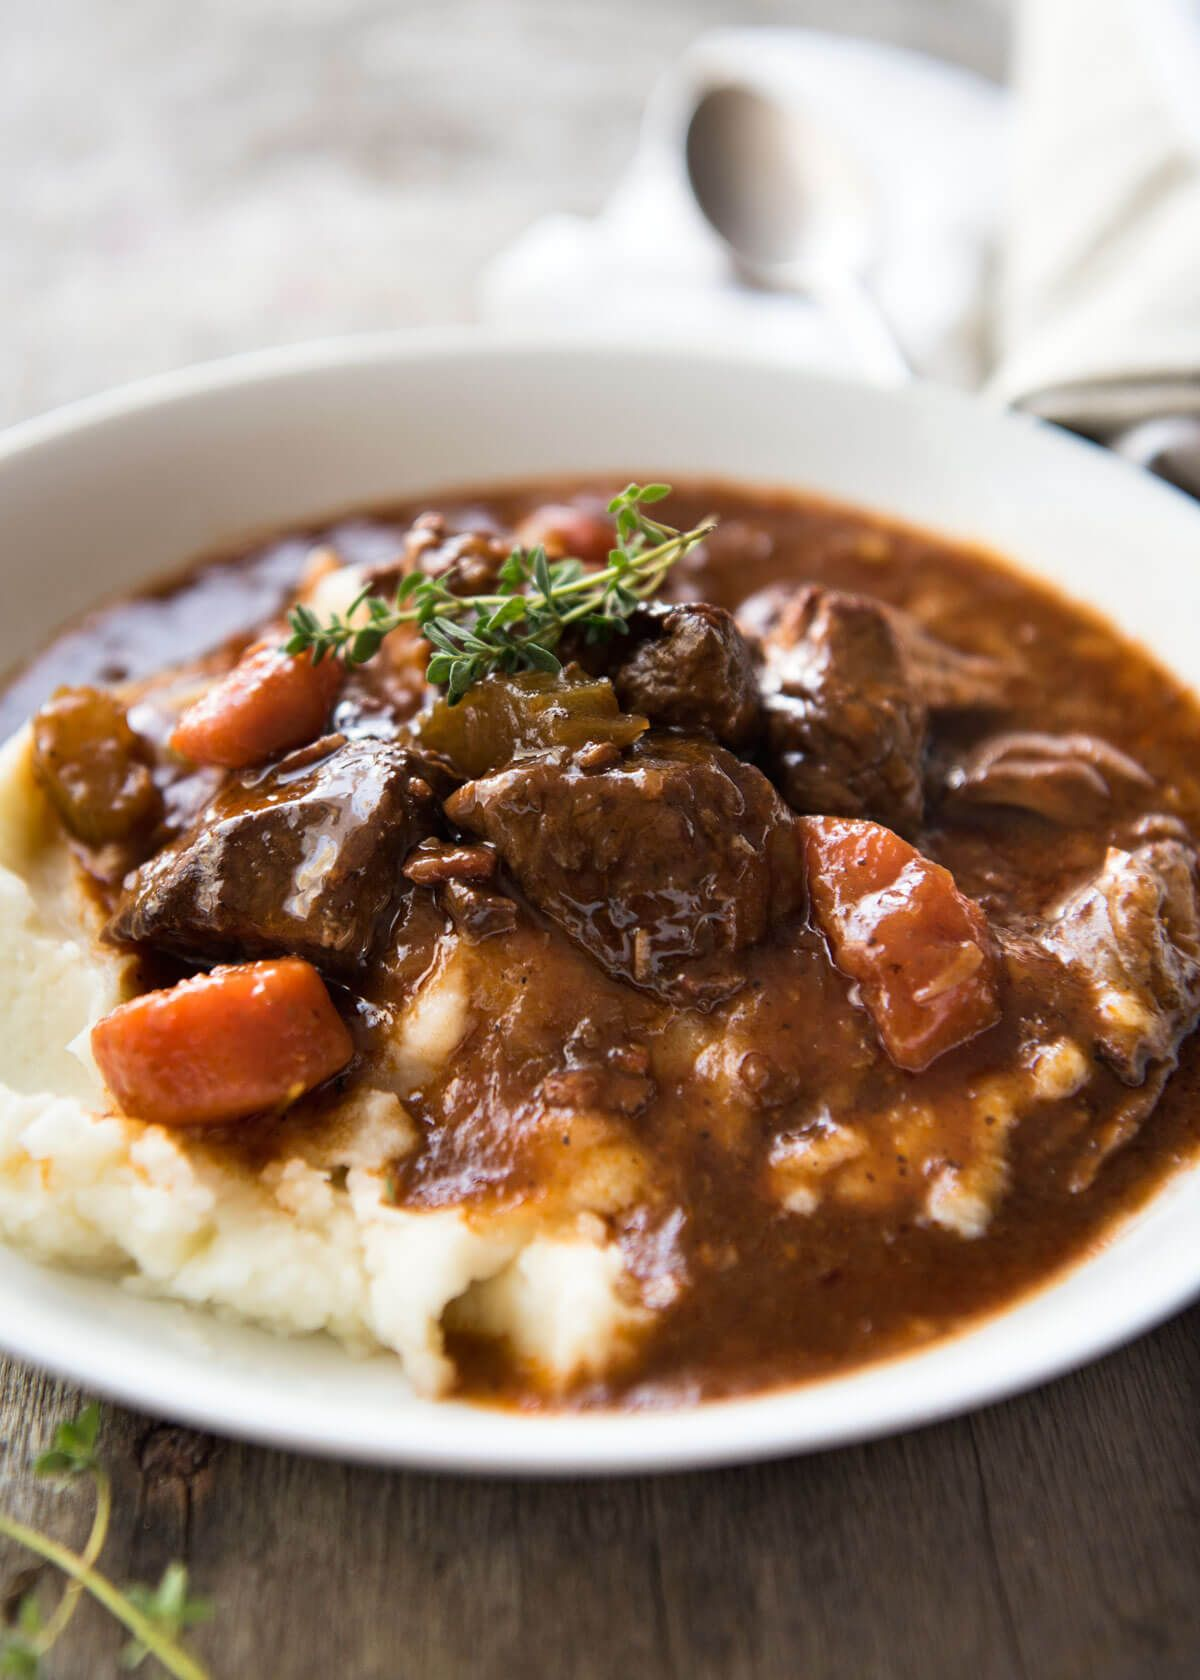 Irish Beef And Guinness Stew Recipe Beef Stew Recipe Guinness Stew Recipe Slow Cook Beef Stew